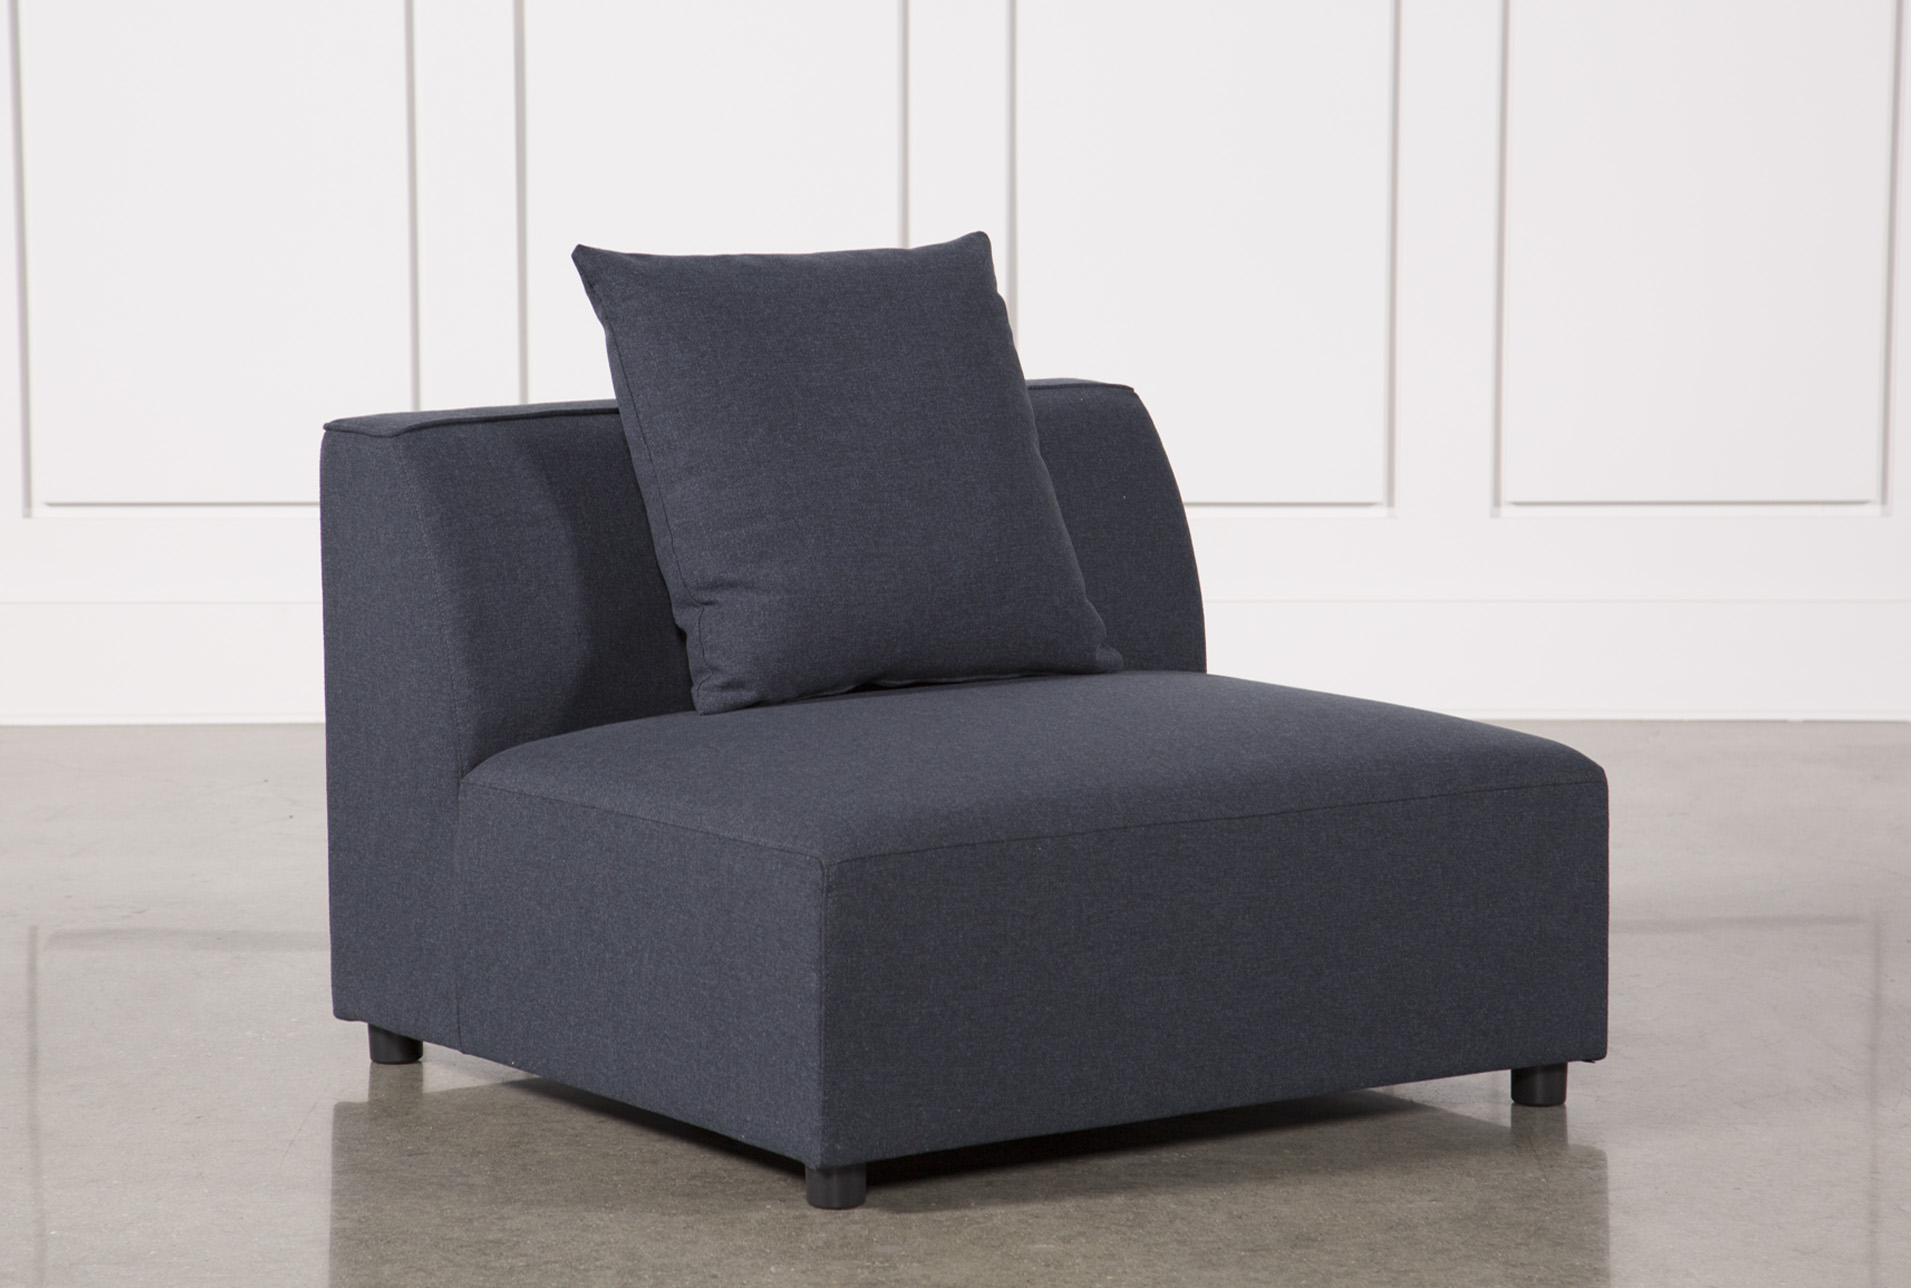 Exceptionnel Clayton Dark Grey Armless Chair (Qty: 1) Has Been Successfully Added To  Your Cart.